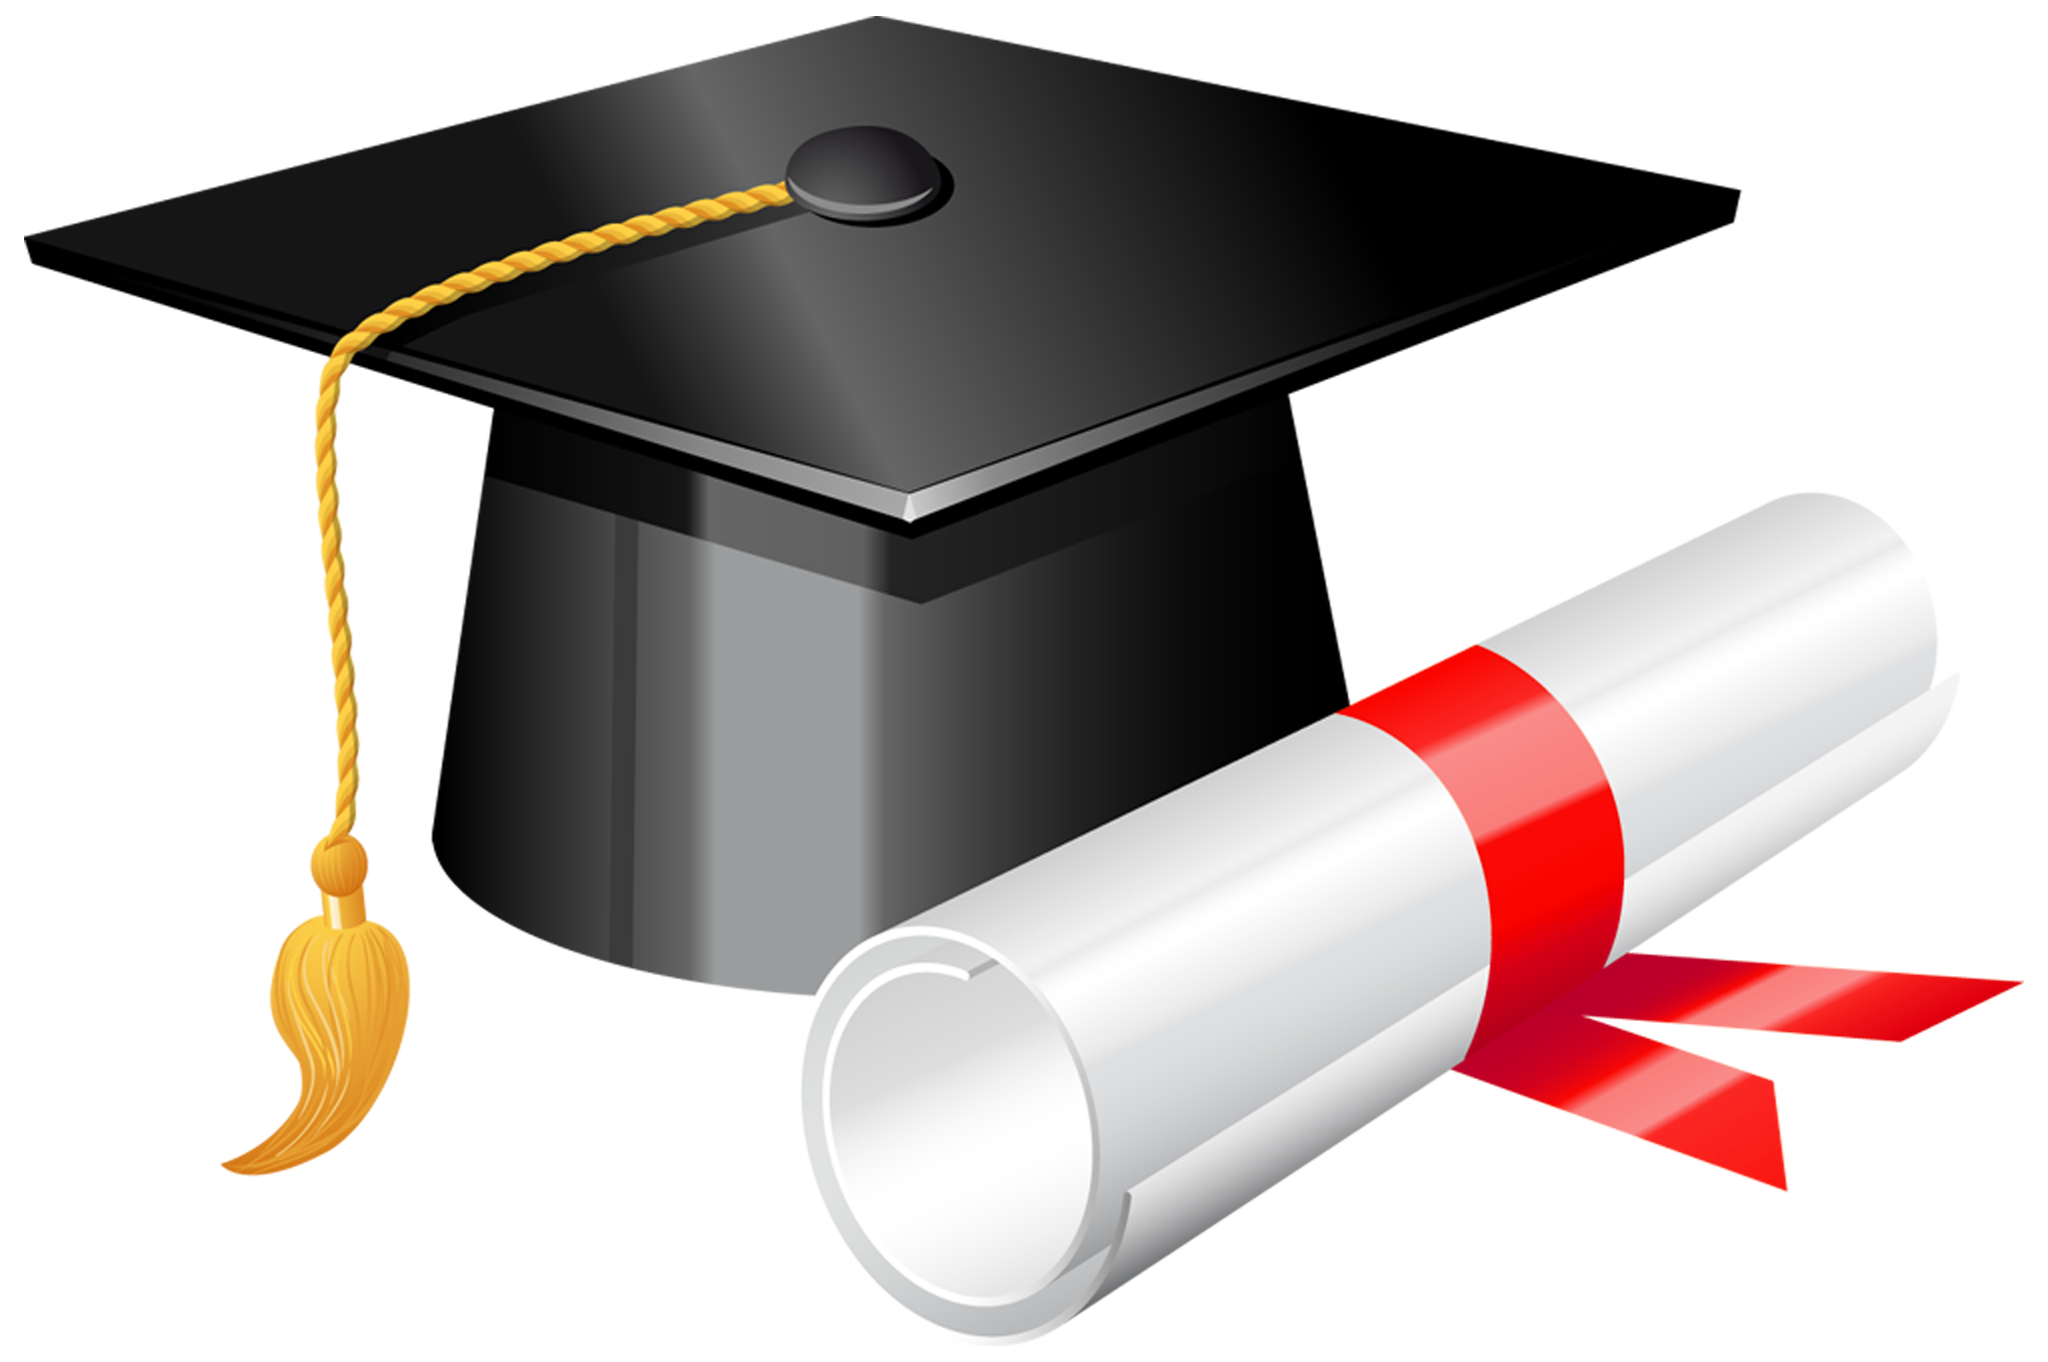 vector royalty free Diploma clipart. Graduation cap with png.